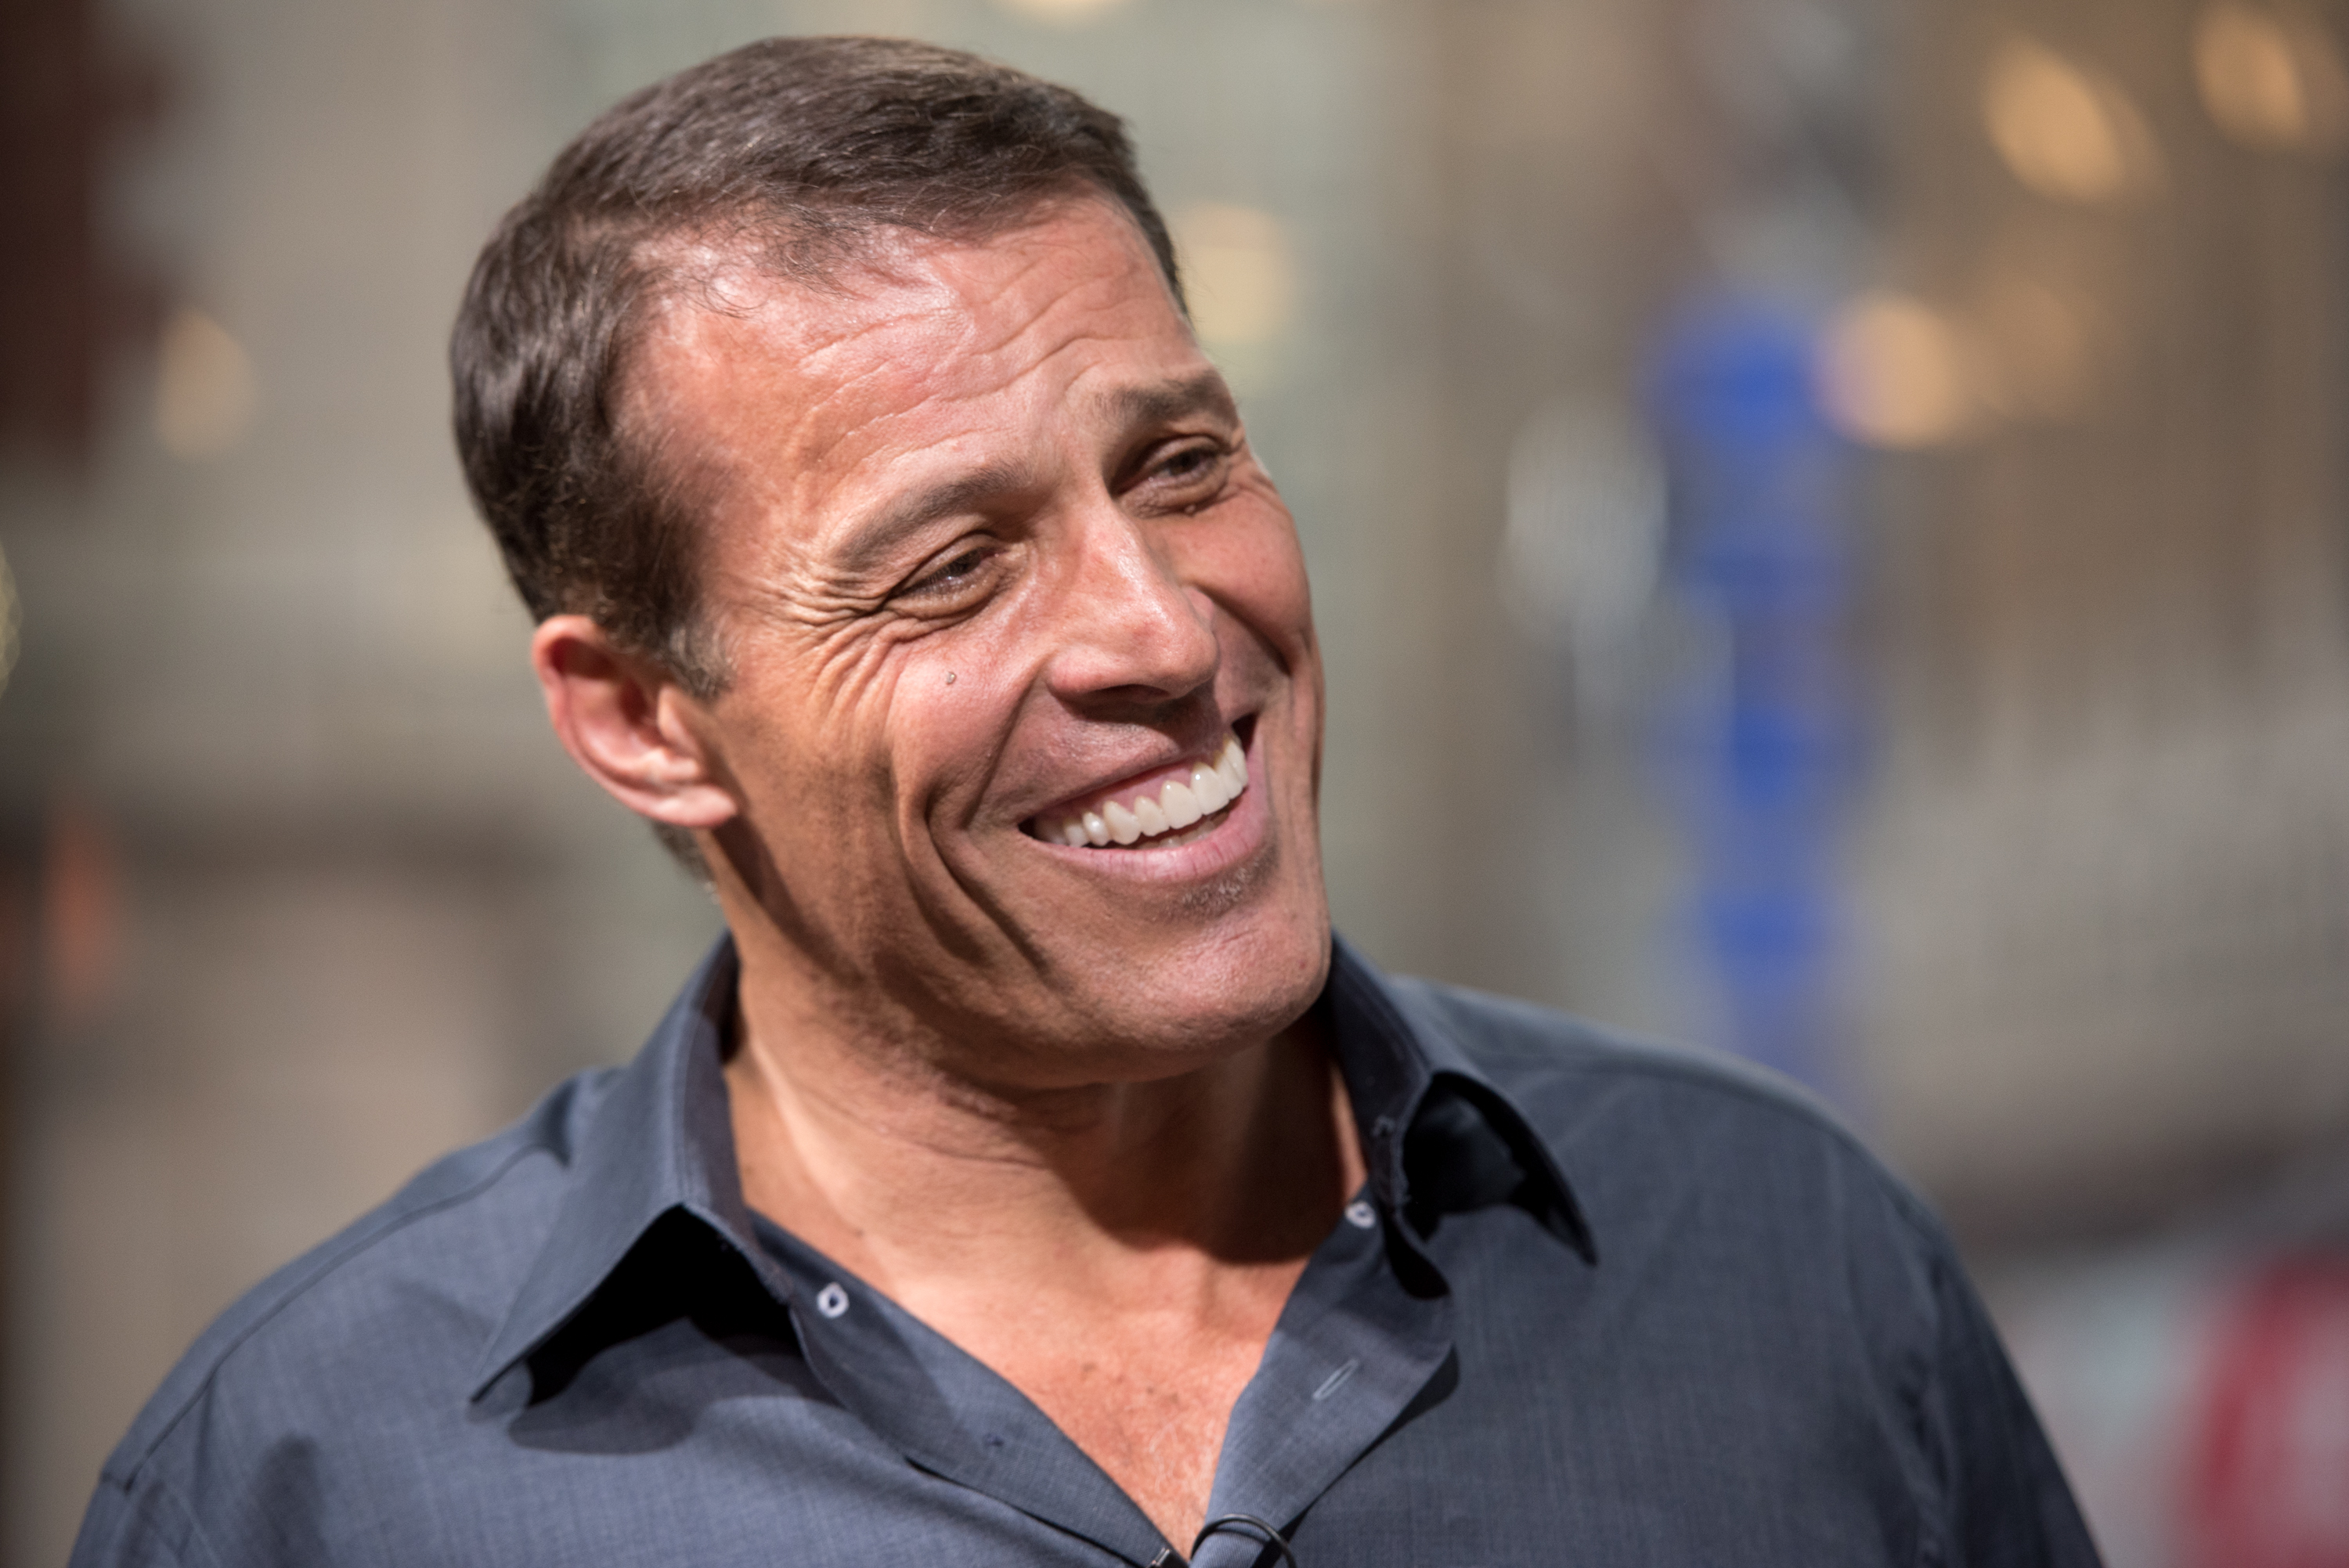 Tony Robbins' Secrets to Achieving Financial Freedom